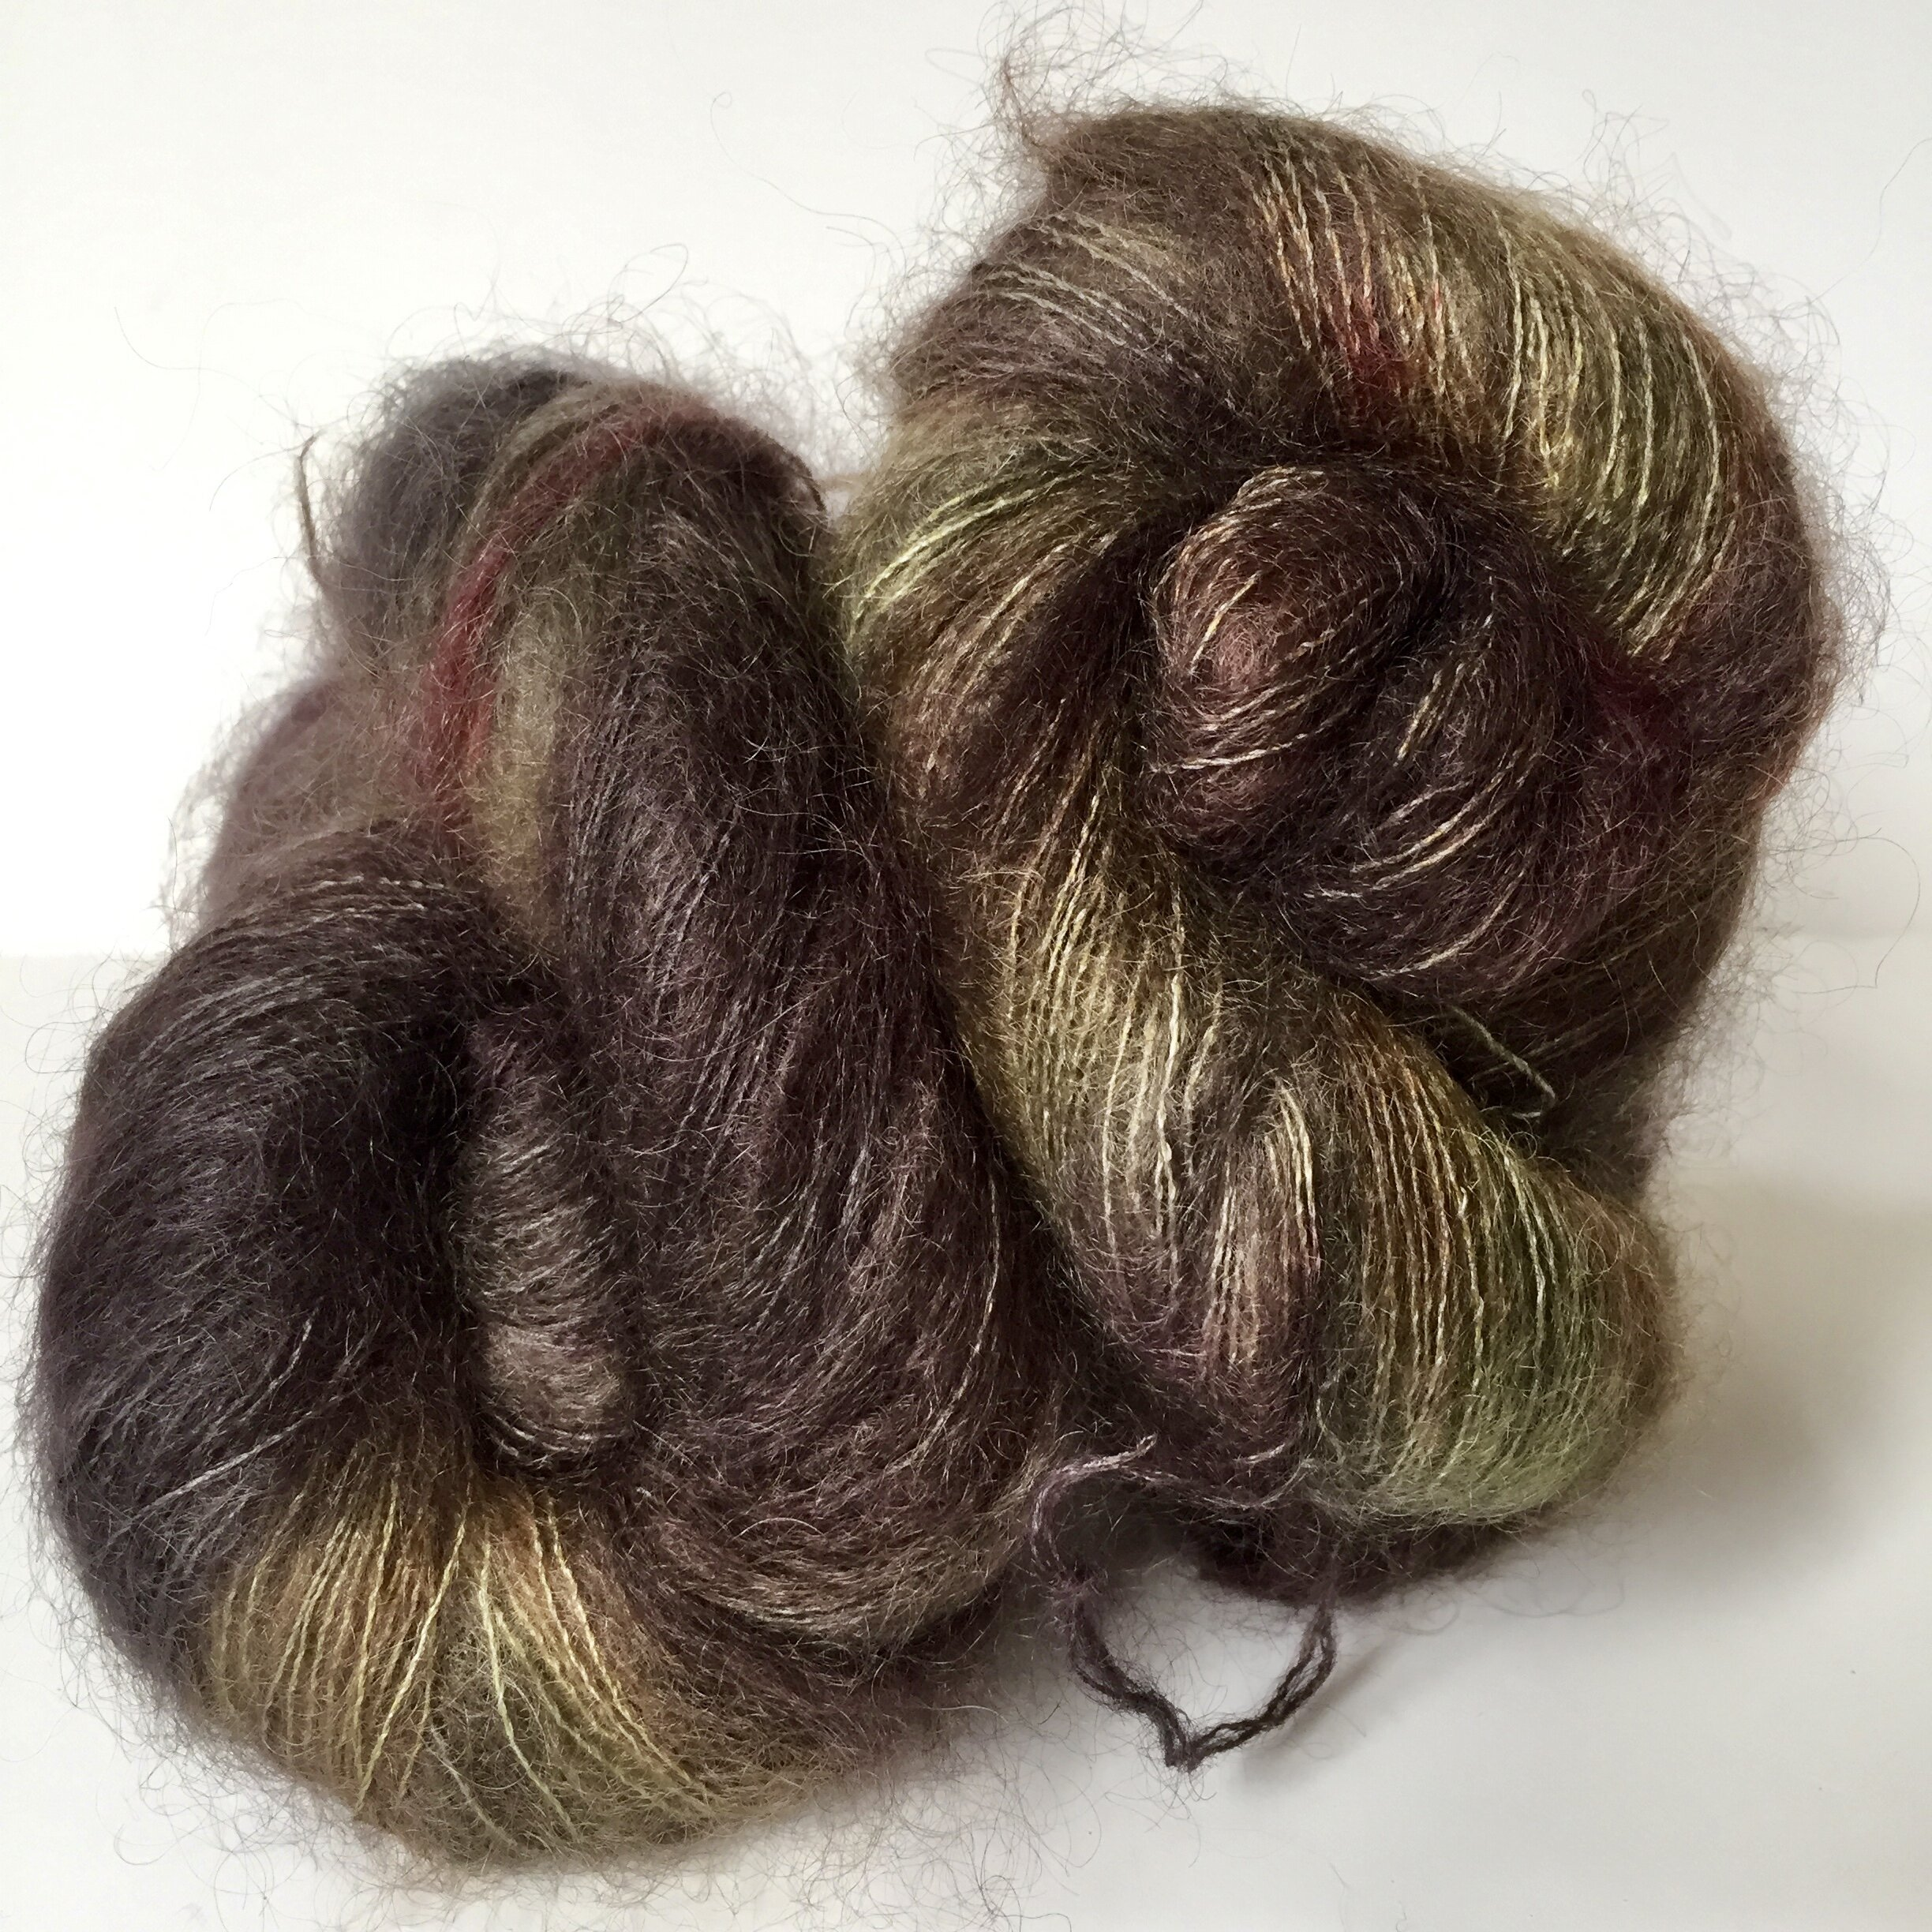 Kid silk mohair in sophisticated subtlety